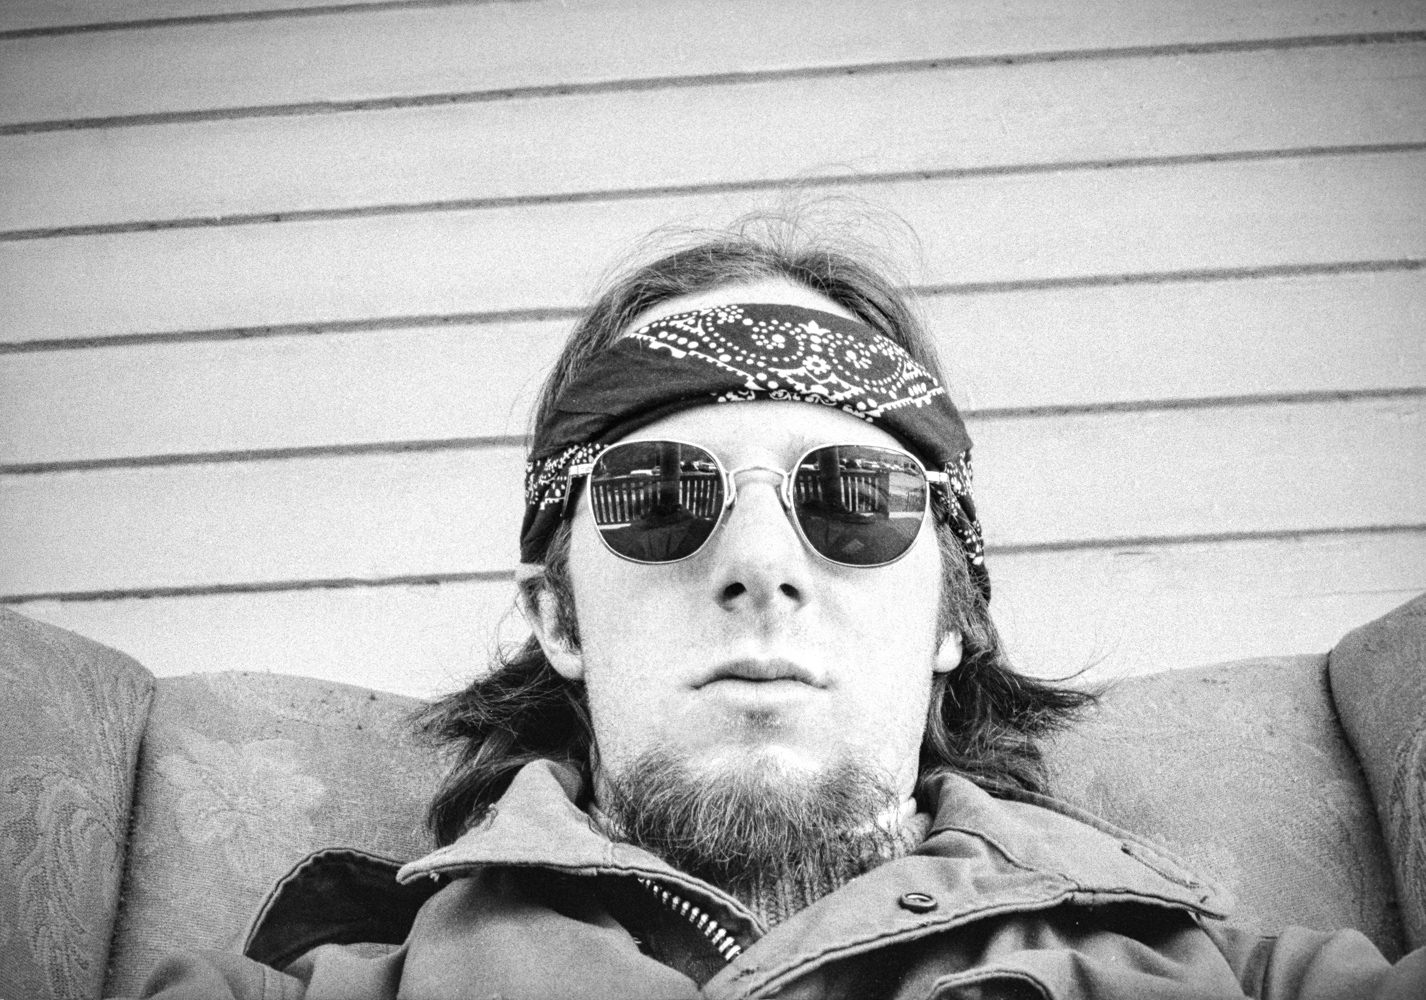 Self-portrait, Rochester, NY 1971